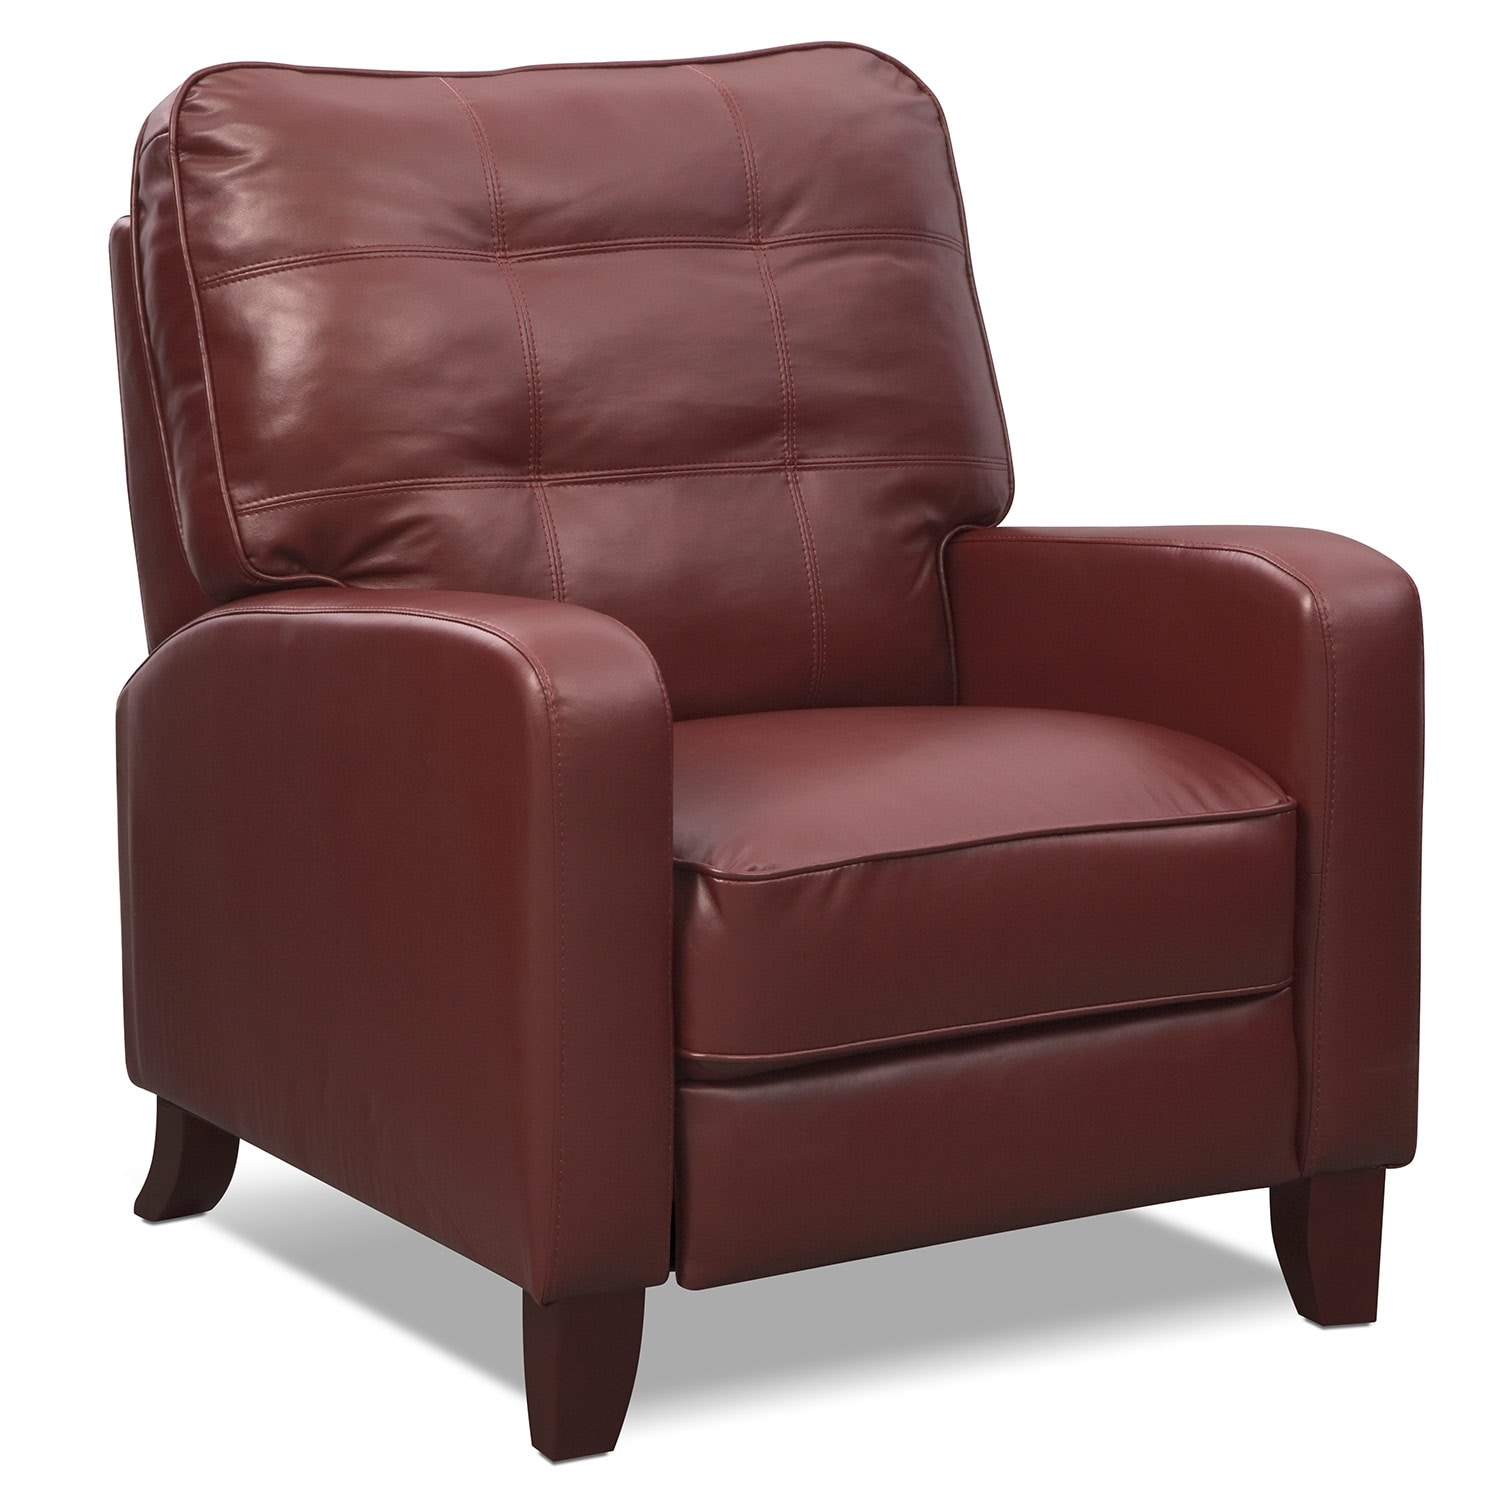 Living Room Furniture - Clinton Push-Back Recliner